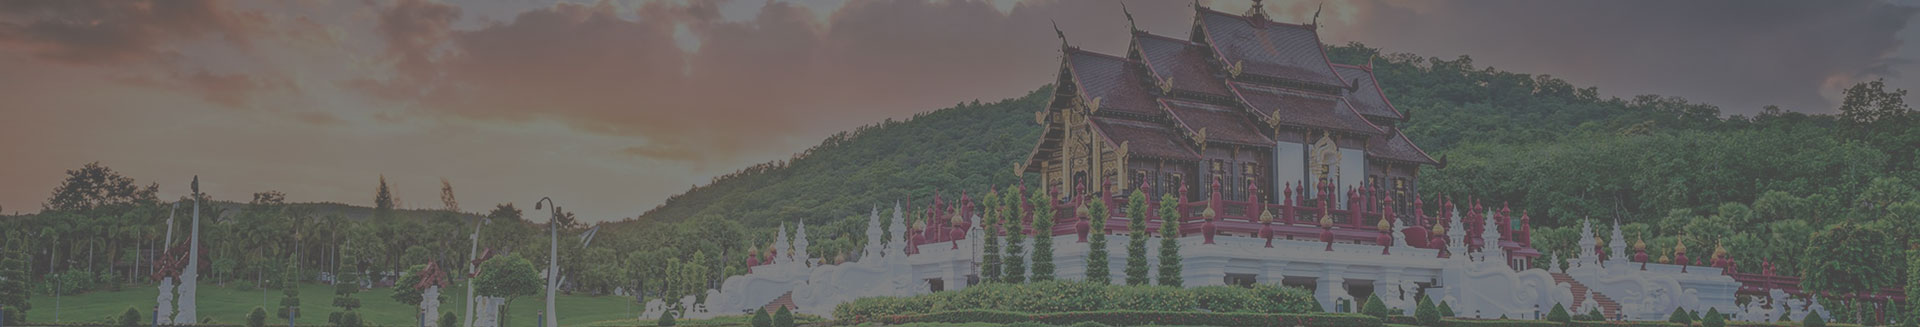 28 Day Urban Retreat Program Chiang Mai